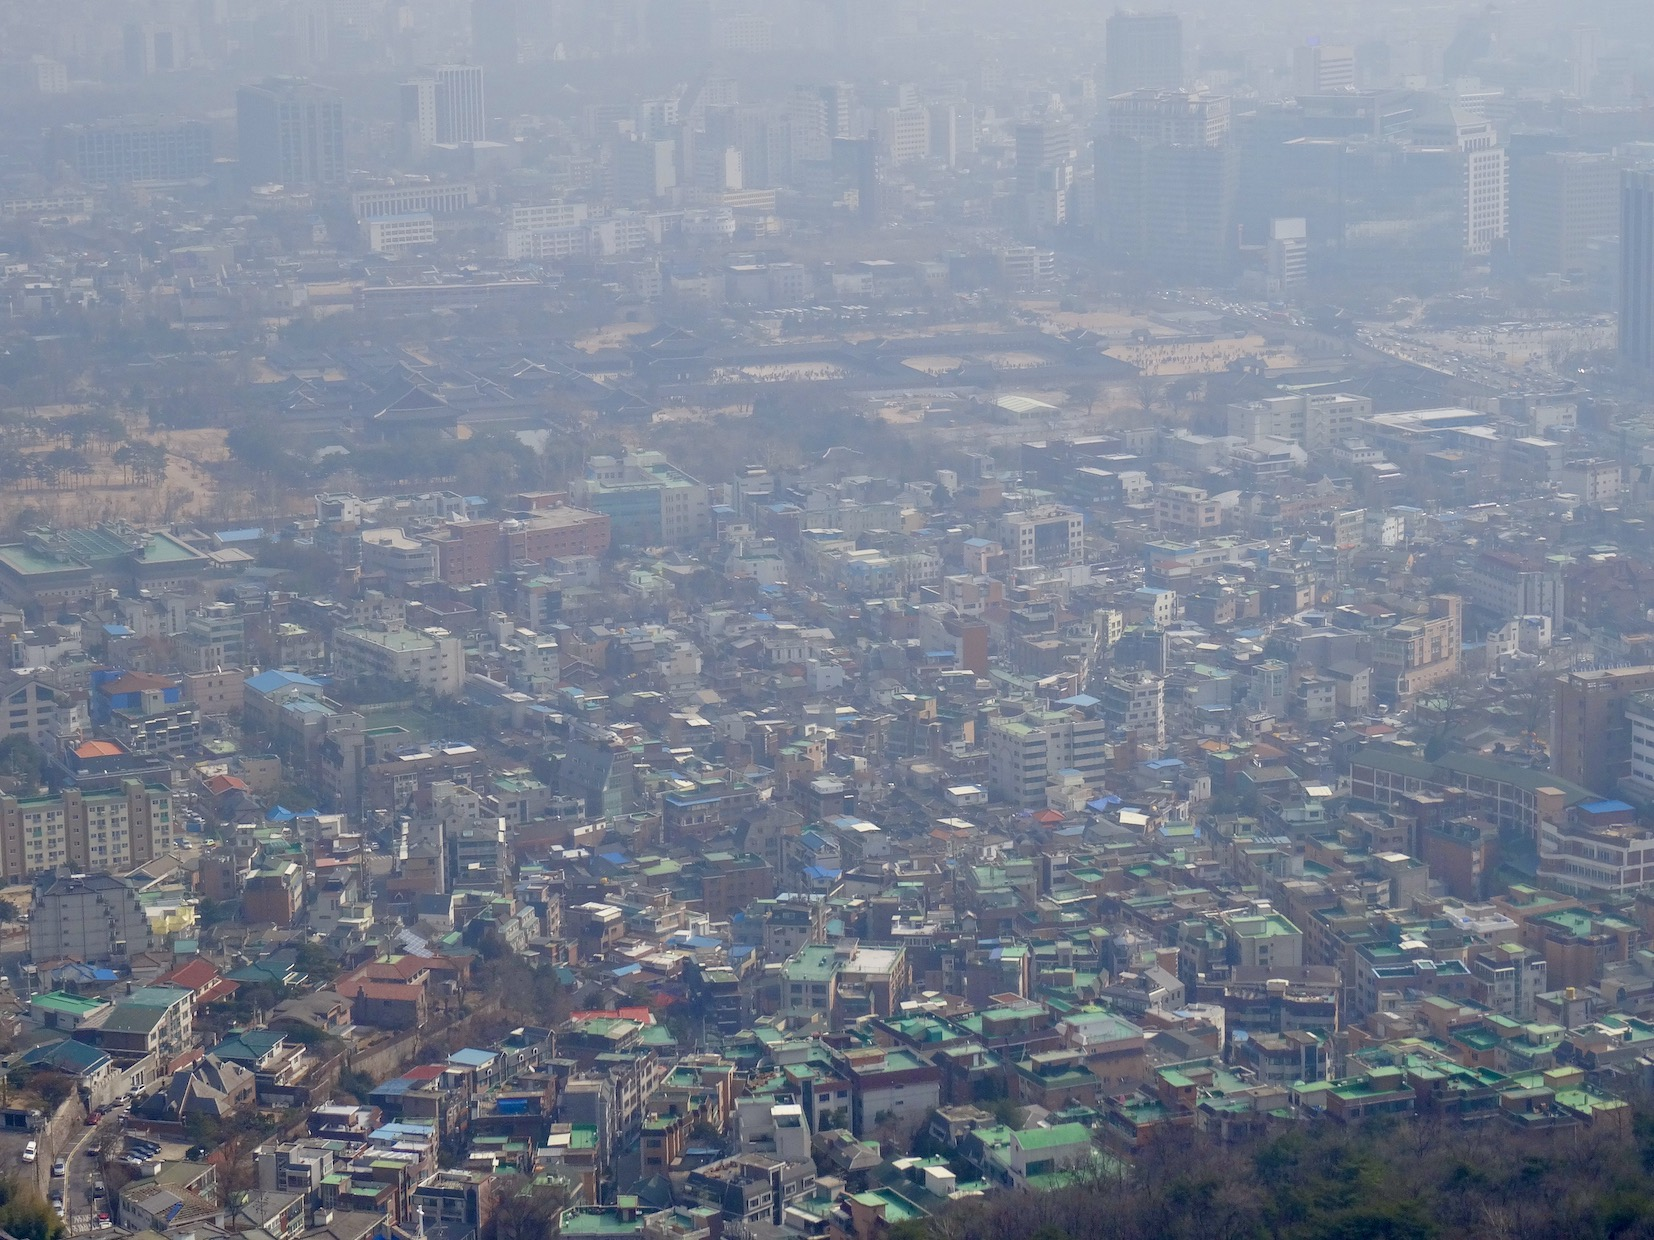 Panoramic Seoul Seoul Korea.